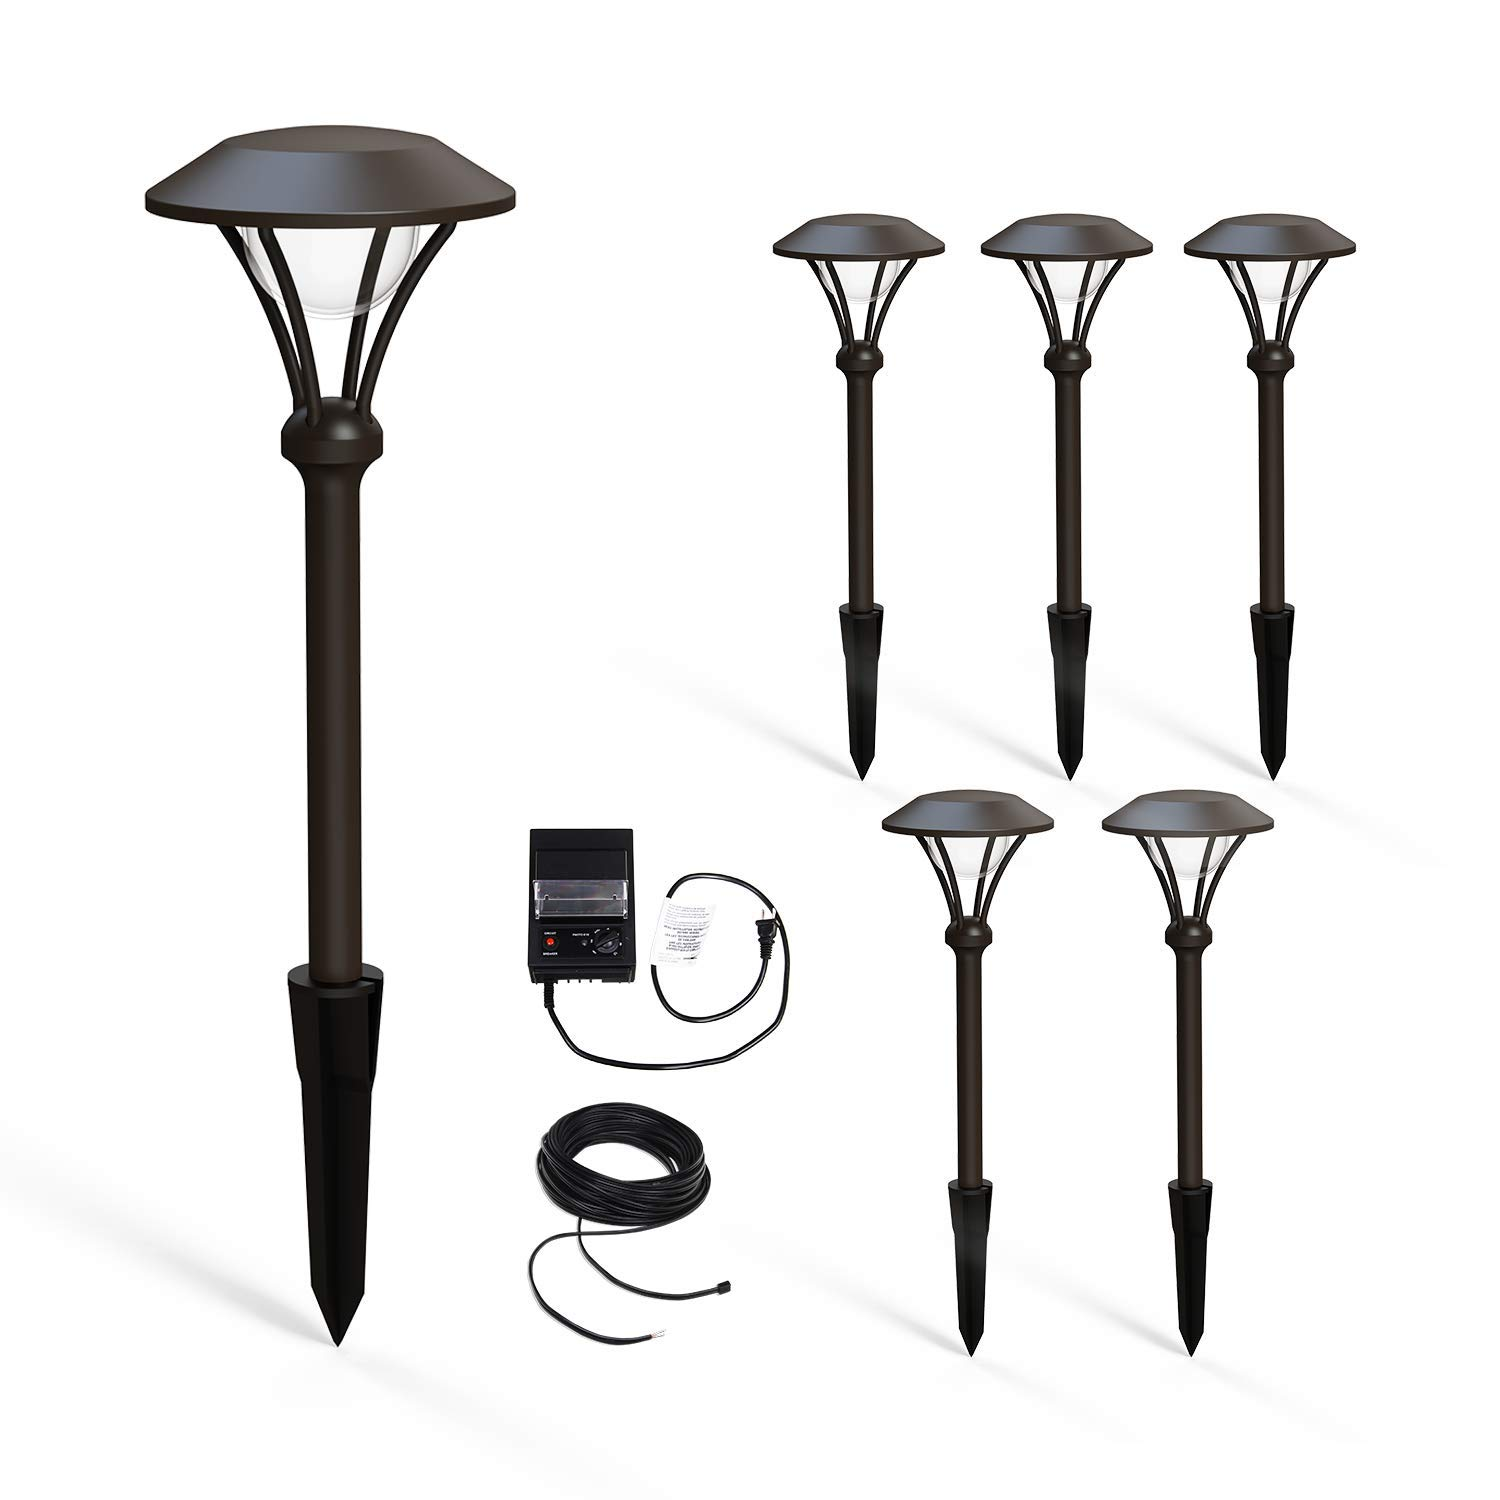 Malibu Celestial 6 Pack LED Pathway Lights, LED Low Voltage Landscape Lighting Garden Light for Driveway, Yard, Lawn, Pathway, Garden 8406-2904-06